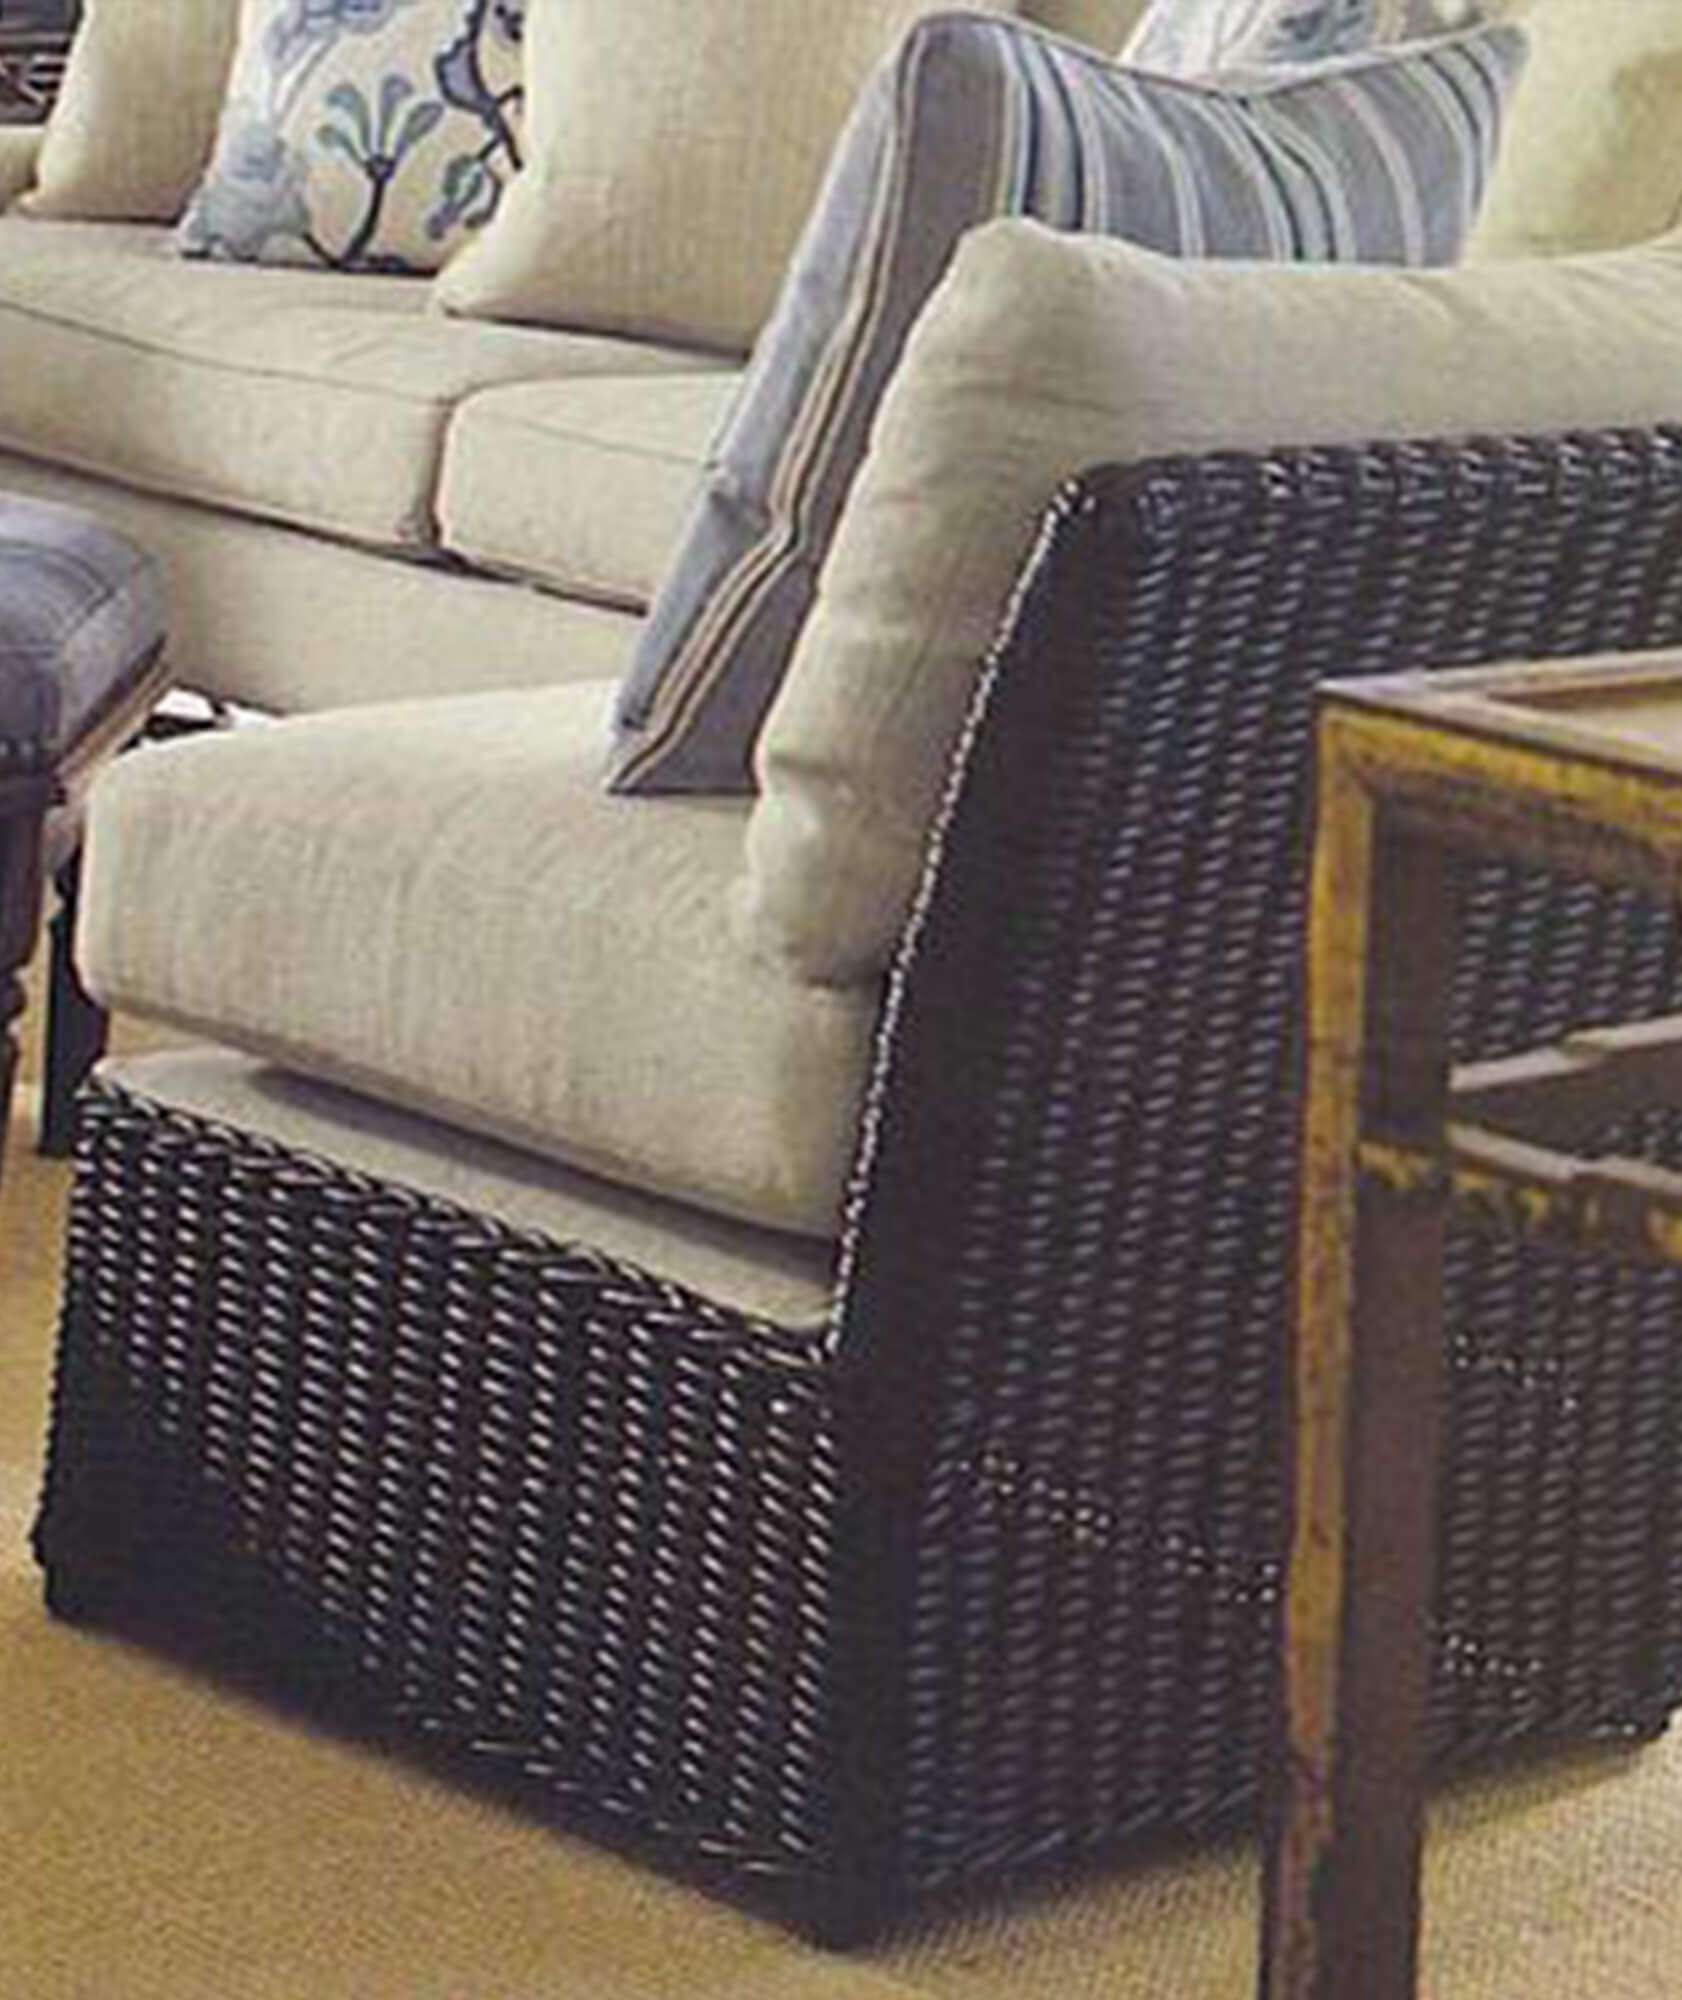 WICKER SLIPPER CHAIR RIGHTHAND - STUART MEMBERY HOME COLLECTION